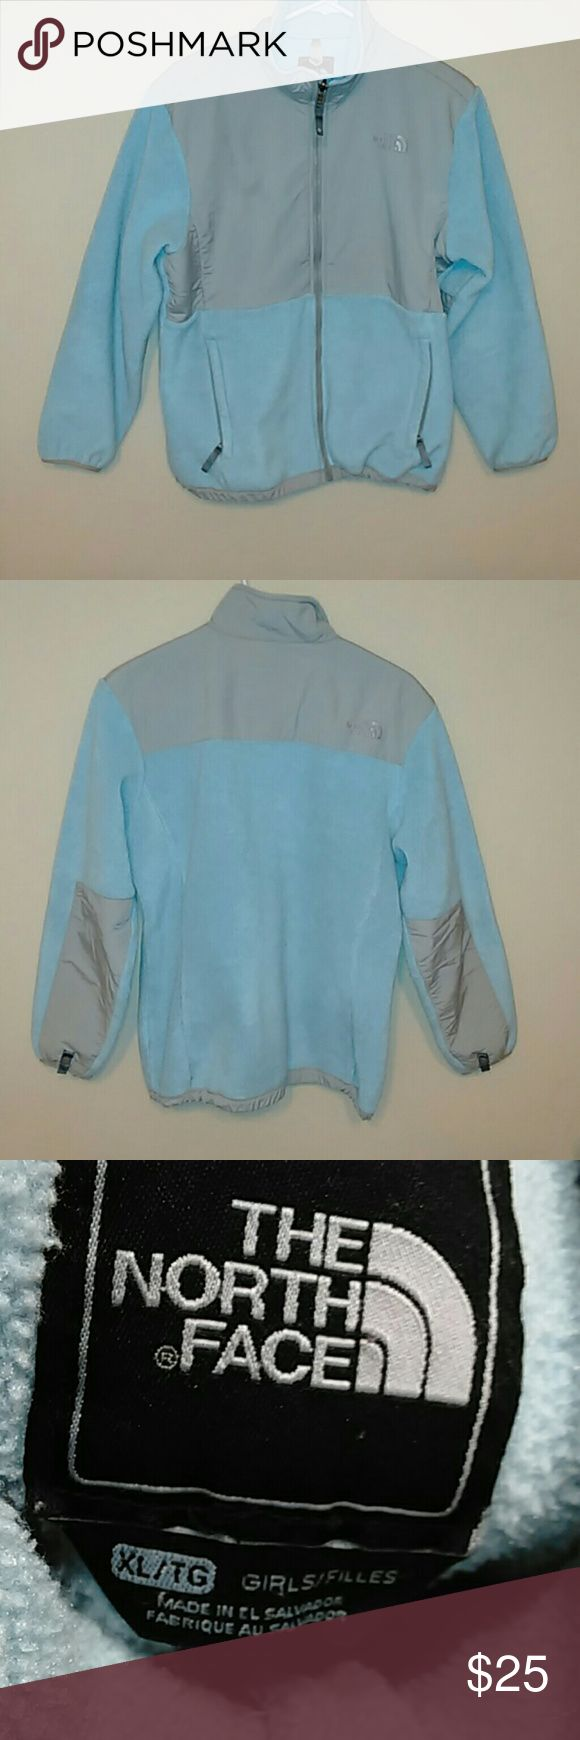 Powder blue North face jacket Denali style. XL in girls but can also fit a small-medium in women's. Great condition. No signs of wear. Very warm and goes with just about everything! The North Face Jackets & Coats